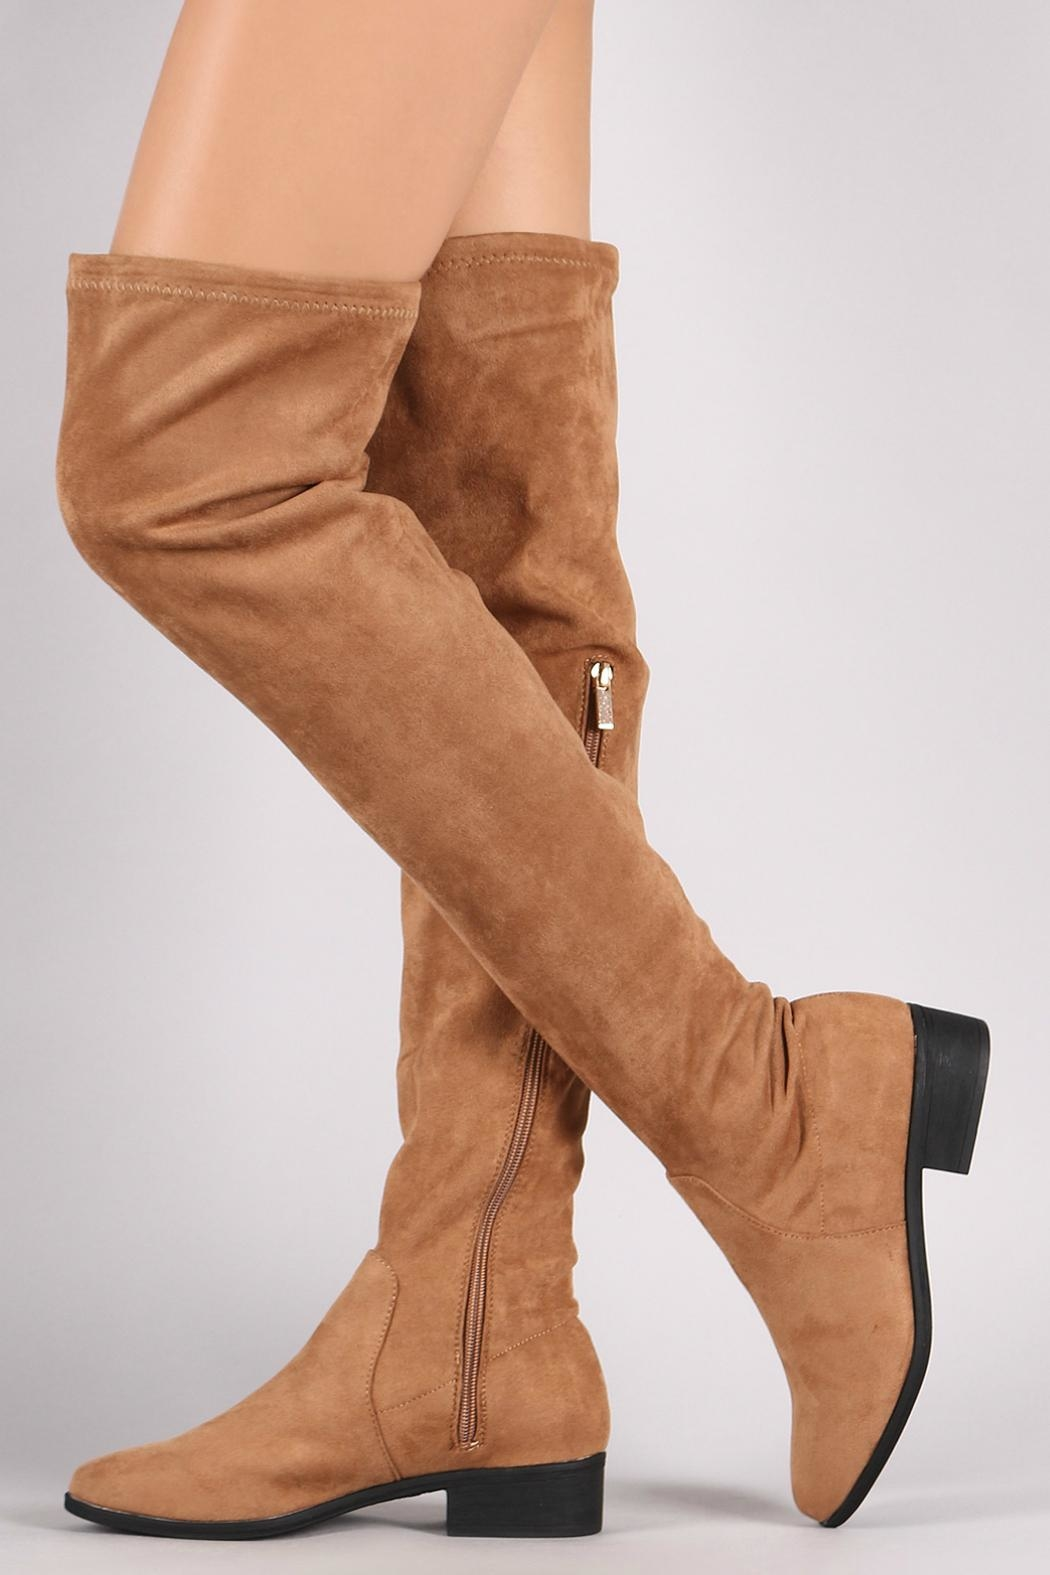 Bamboo Tan Over-The-Knee Boots - Front Full Image